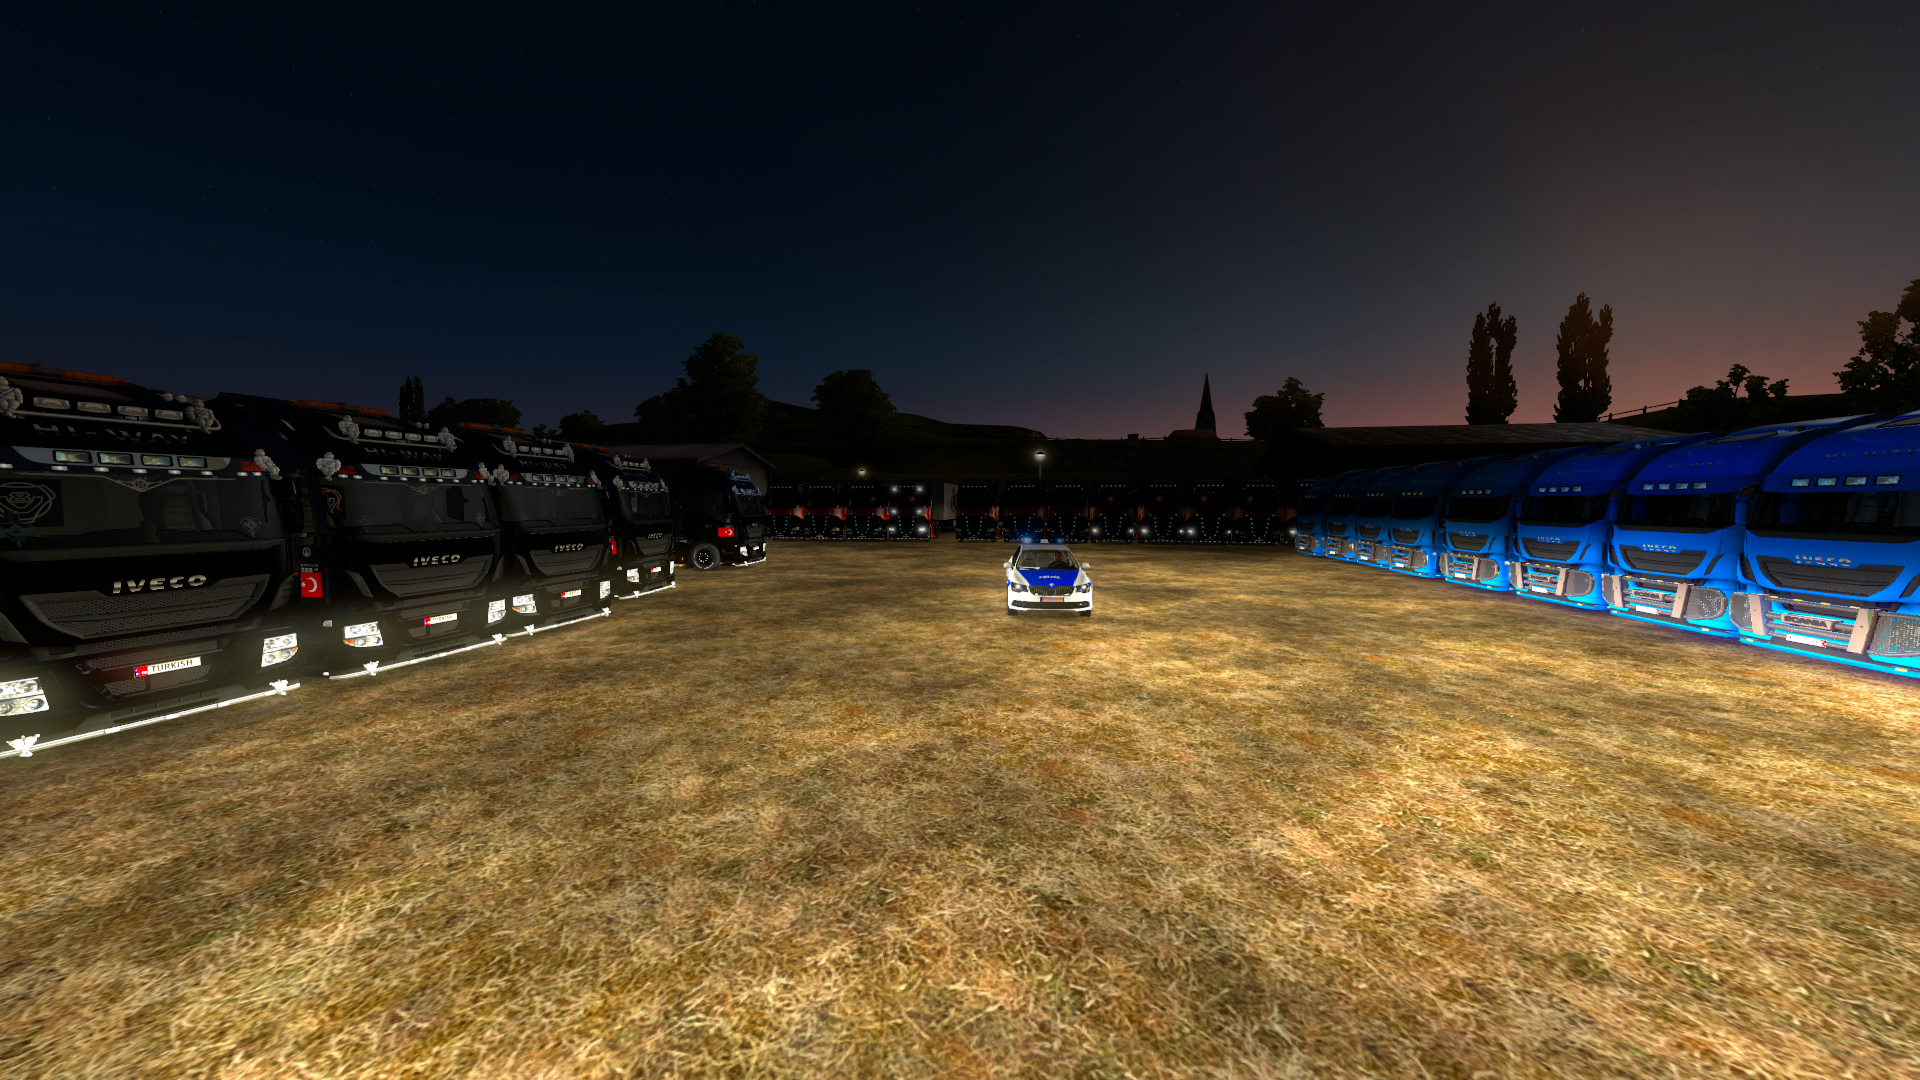 ets2_20190427_214042_00.png